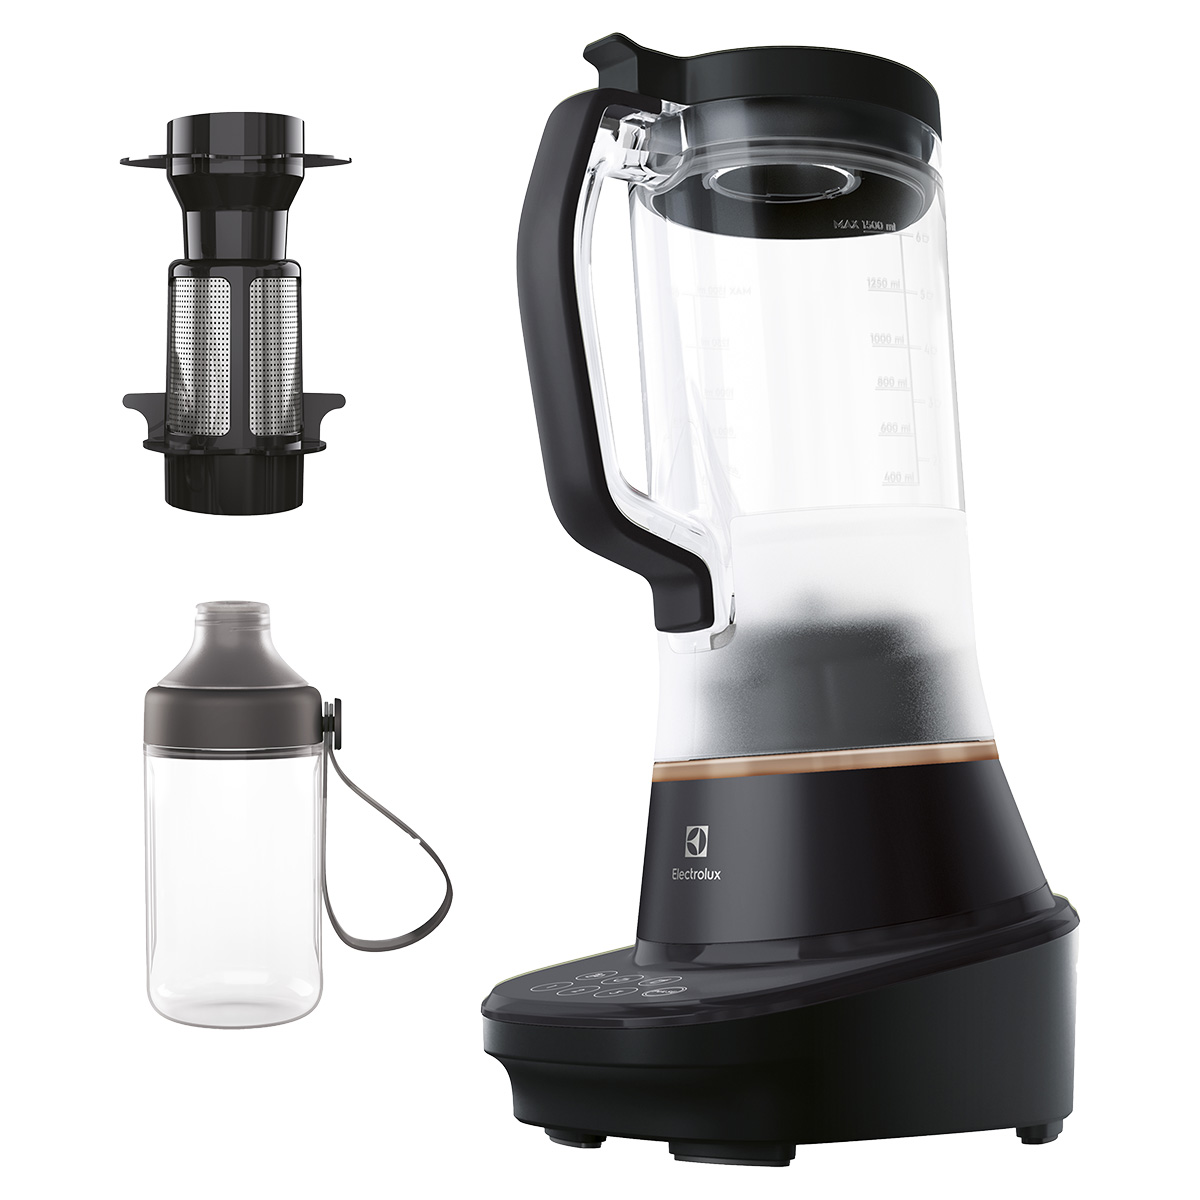 Image of   Electrolux bordblender E7TB1-4GB - Granite Black